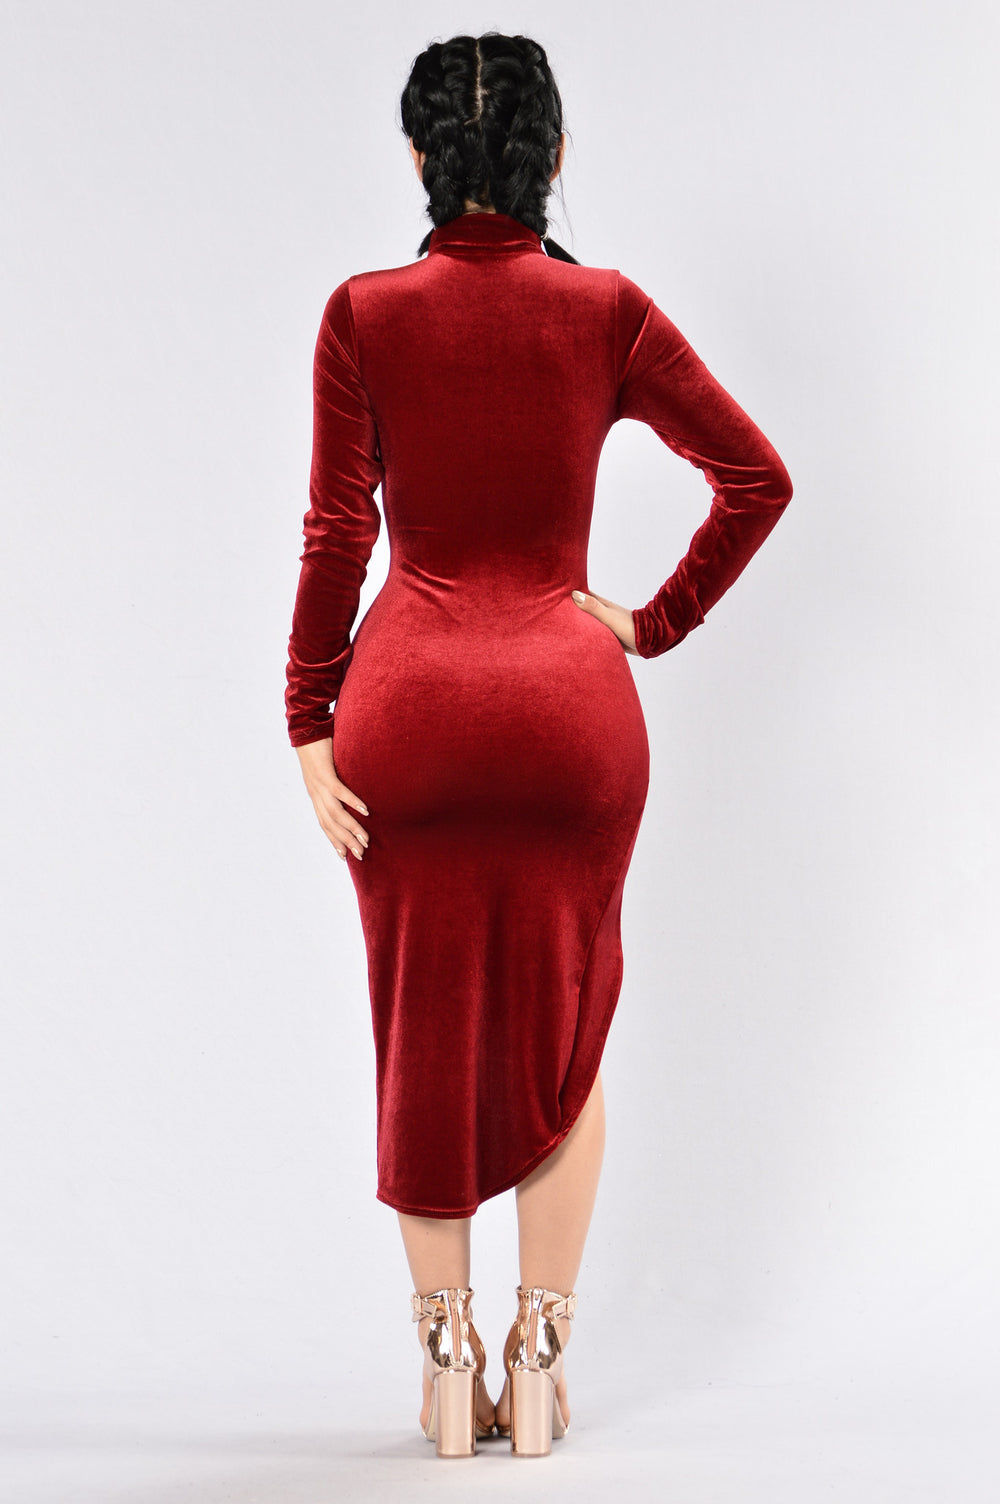 Not A Side Chick Dress - Burgundy